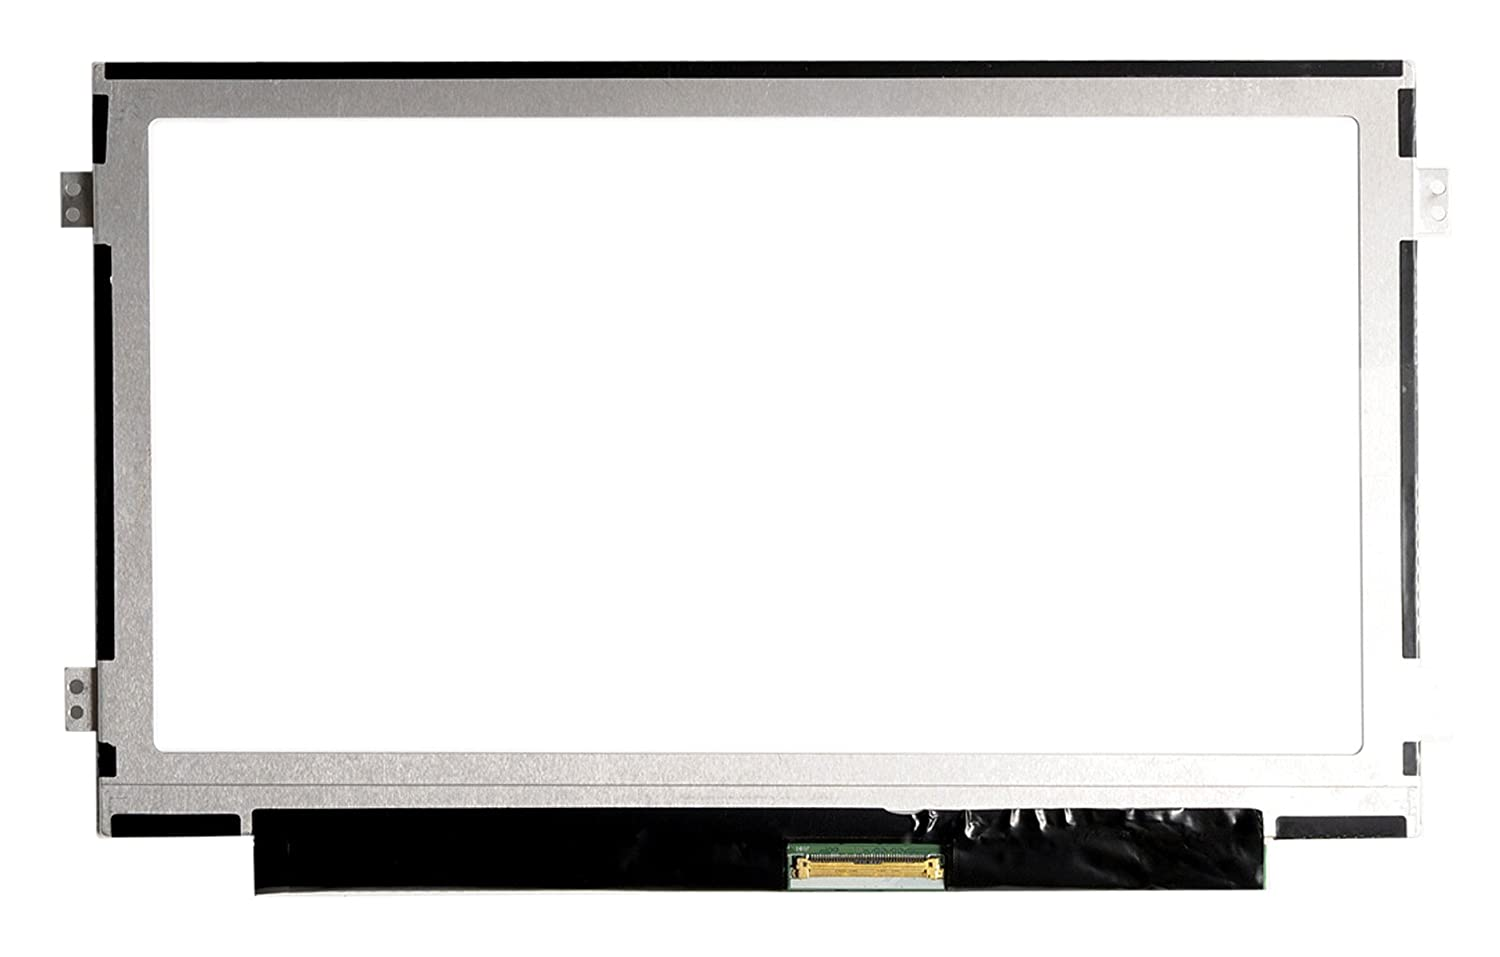 "TOSHIBA SATELLITE S855-S5378 LAPTOP 15.6/"" LCD LED Display Screen"